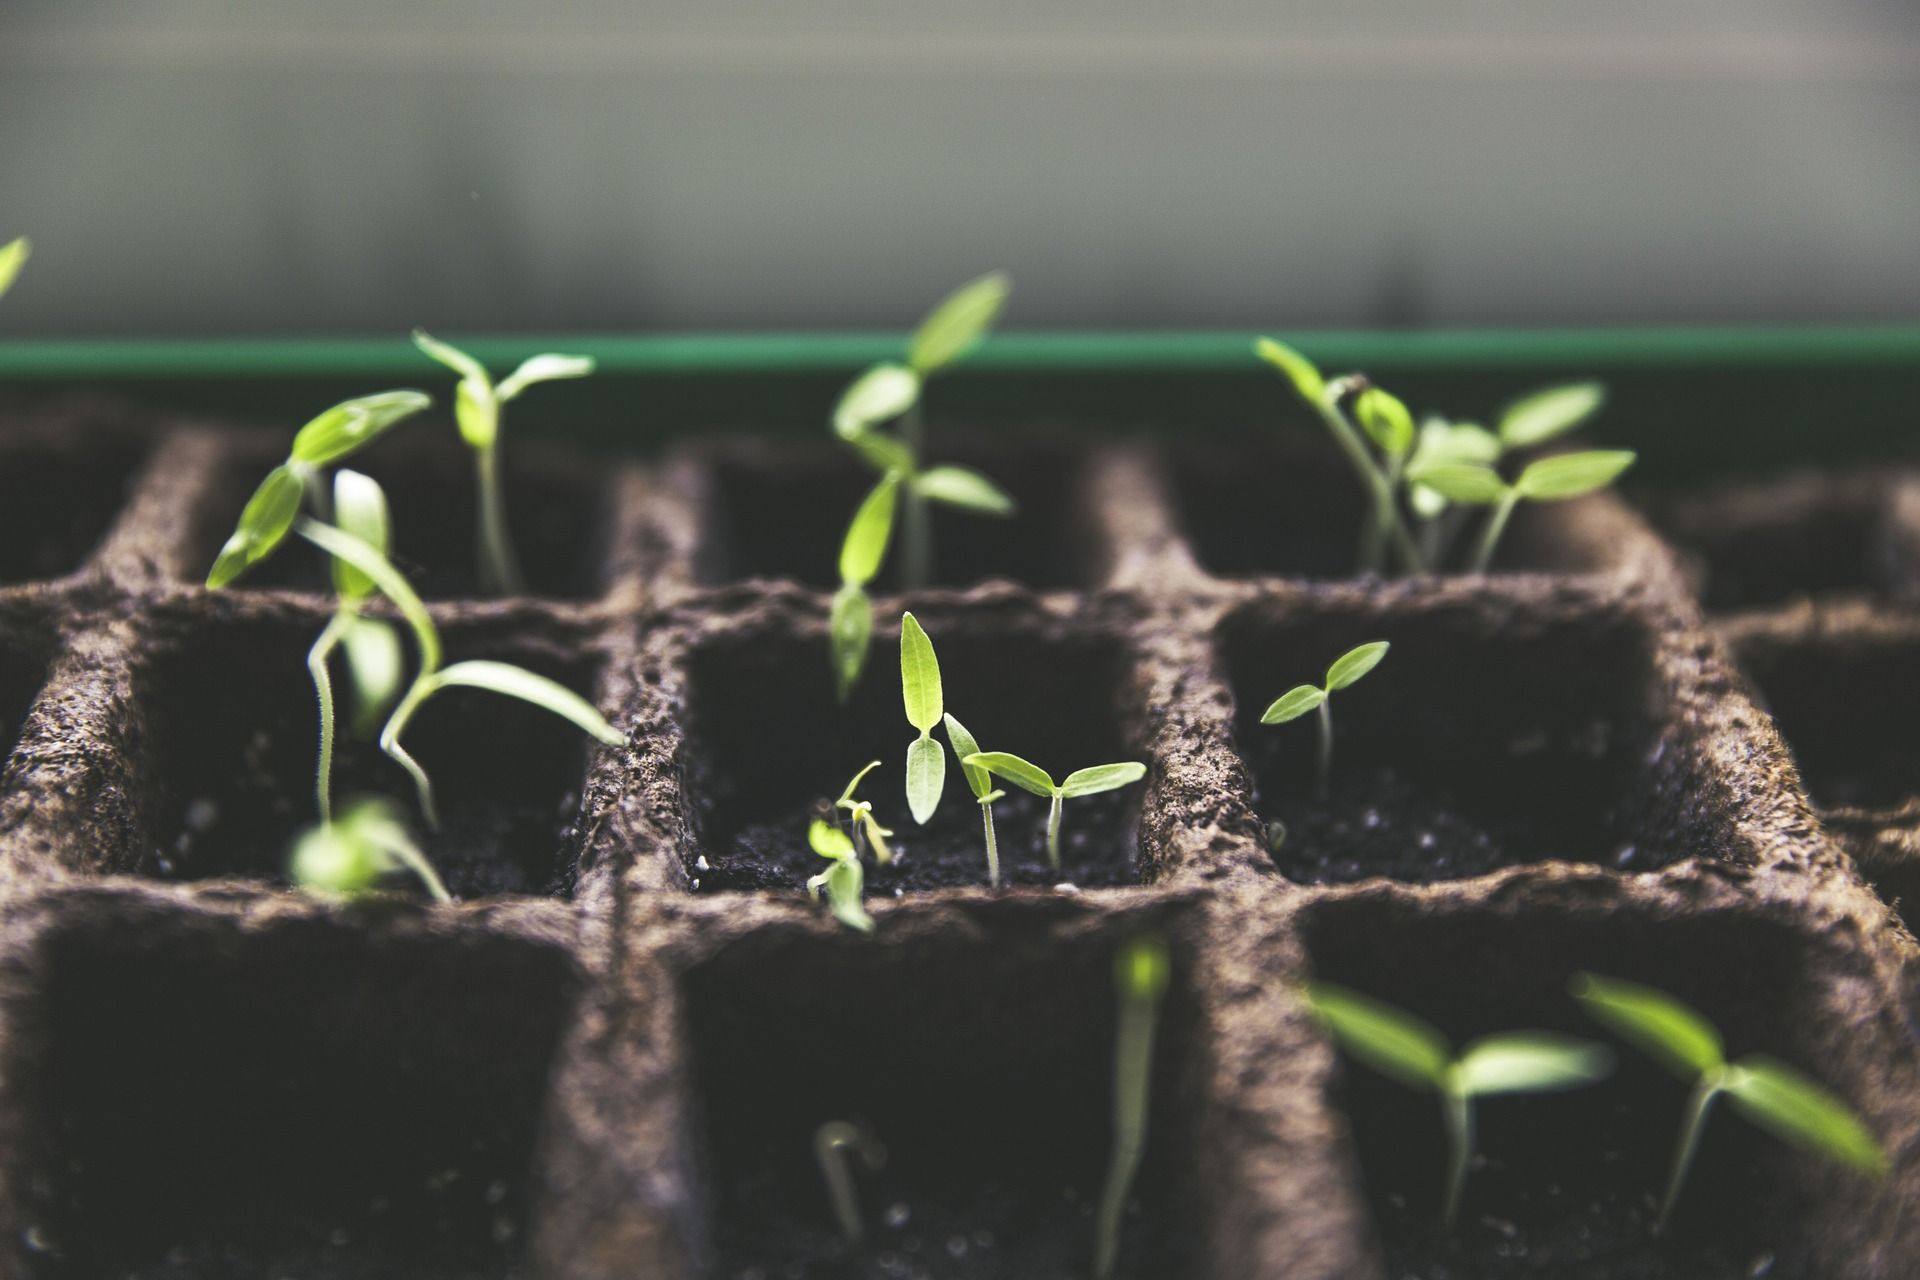 Tiny sprouts growing in a seed tray